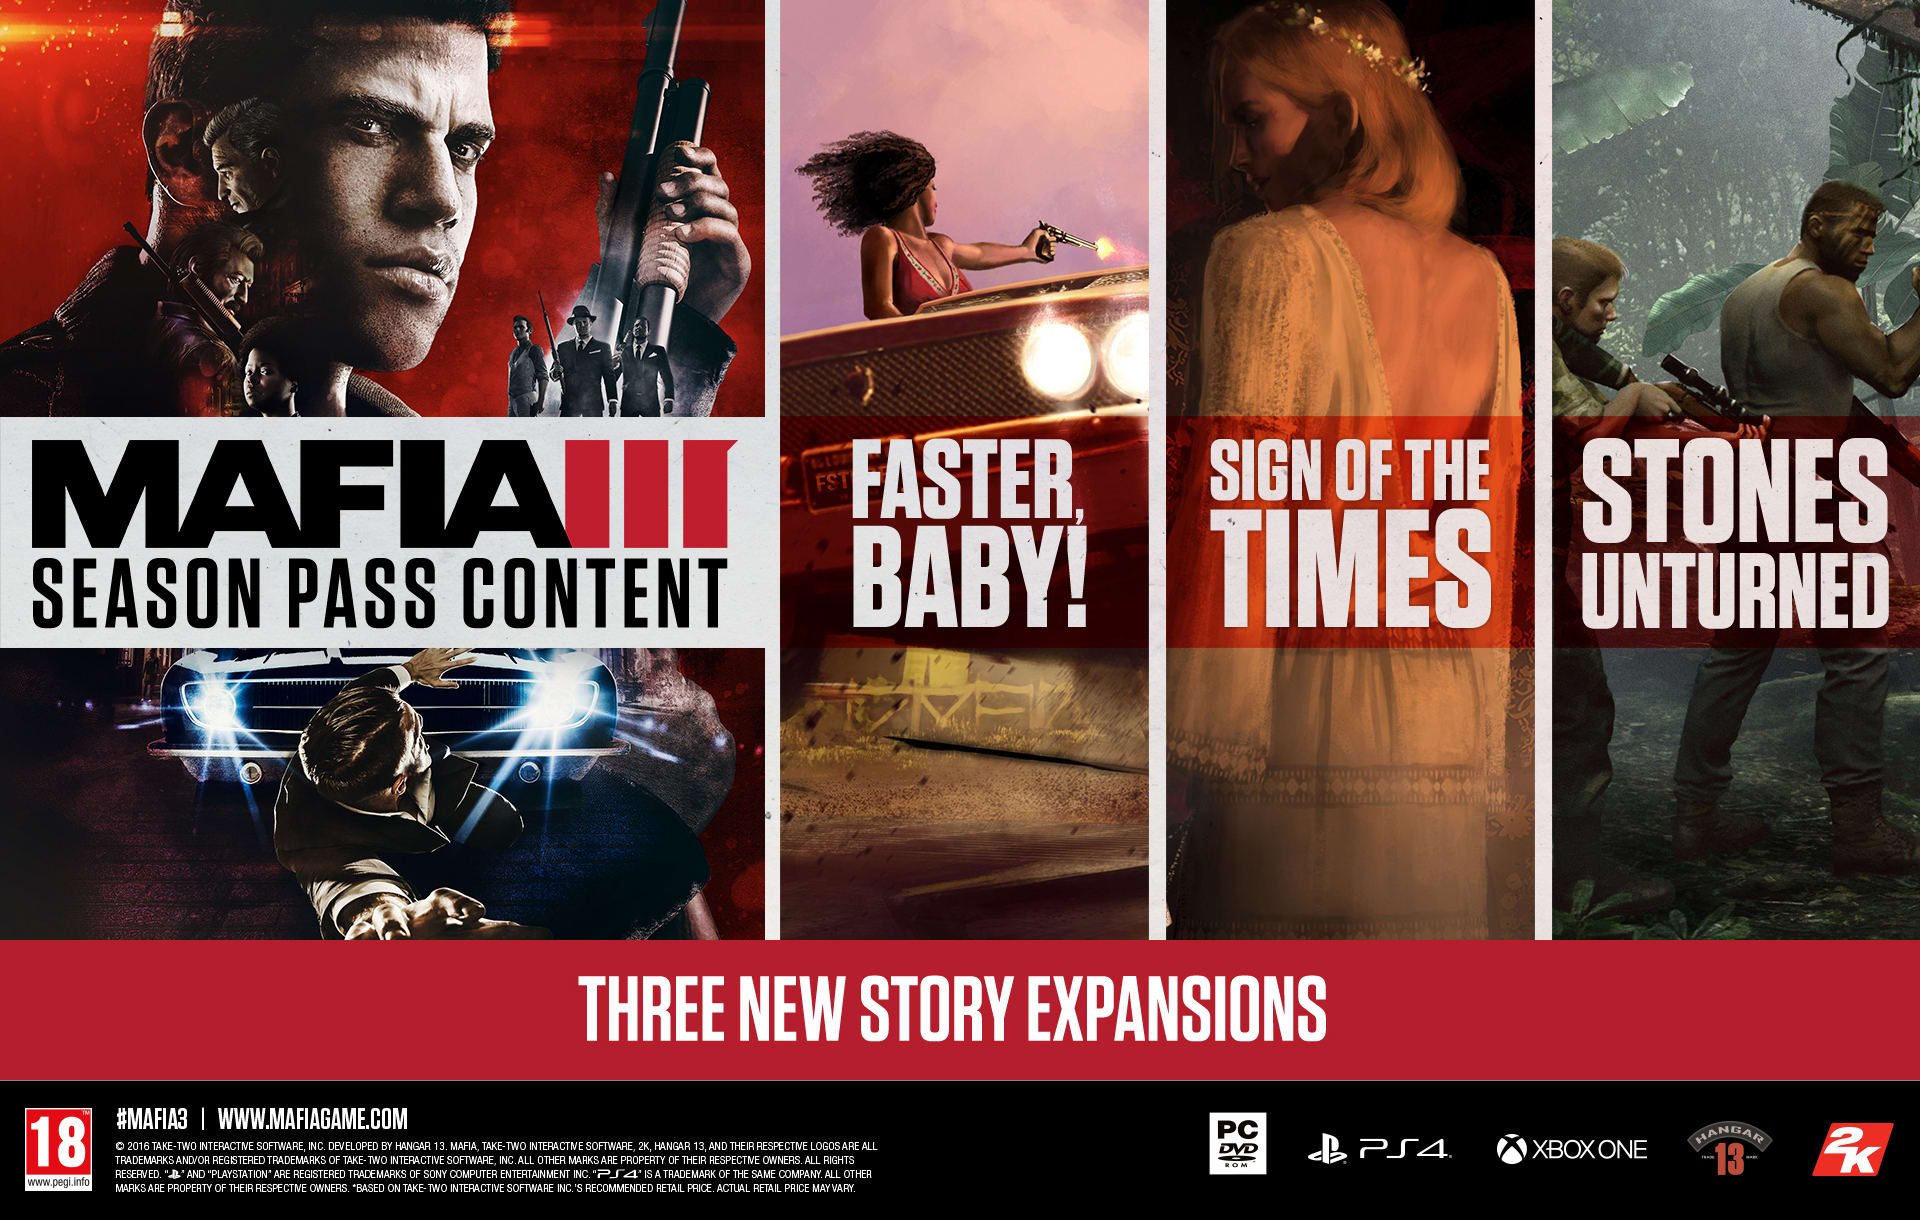 http://img.game.co.uk/images/content/SpecialEditions/Mafia3_Paid_DLC_One_Sheet_2_ENG_NO_PRICE.jpg